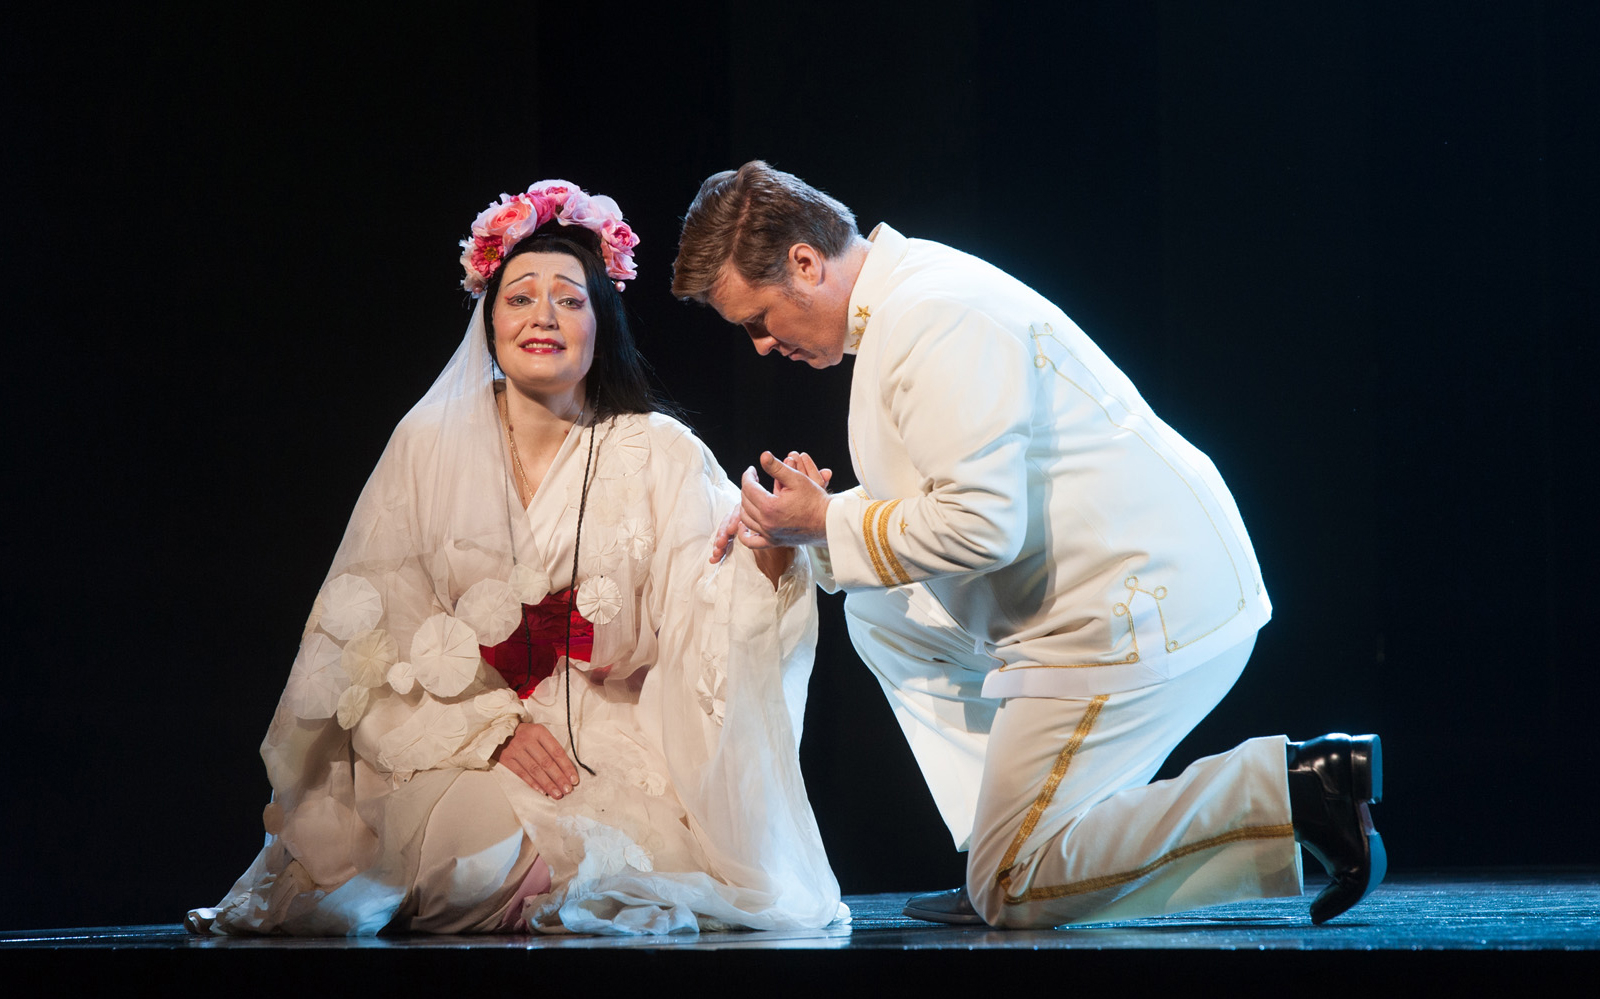 B5490df7 df87 4a3b ac58 003cdfbb2b93 10557 london madam butterfly 02